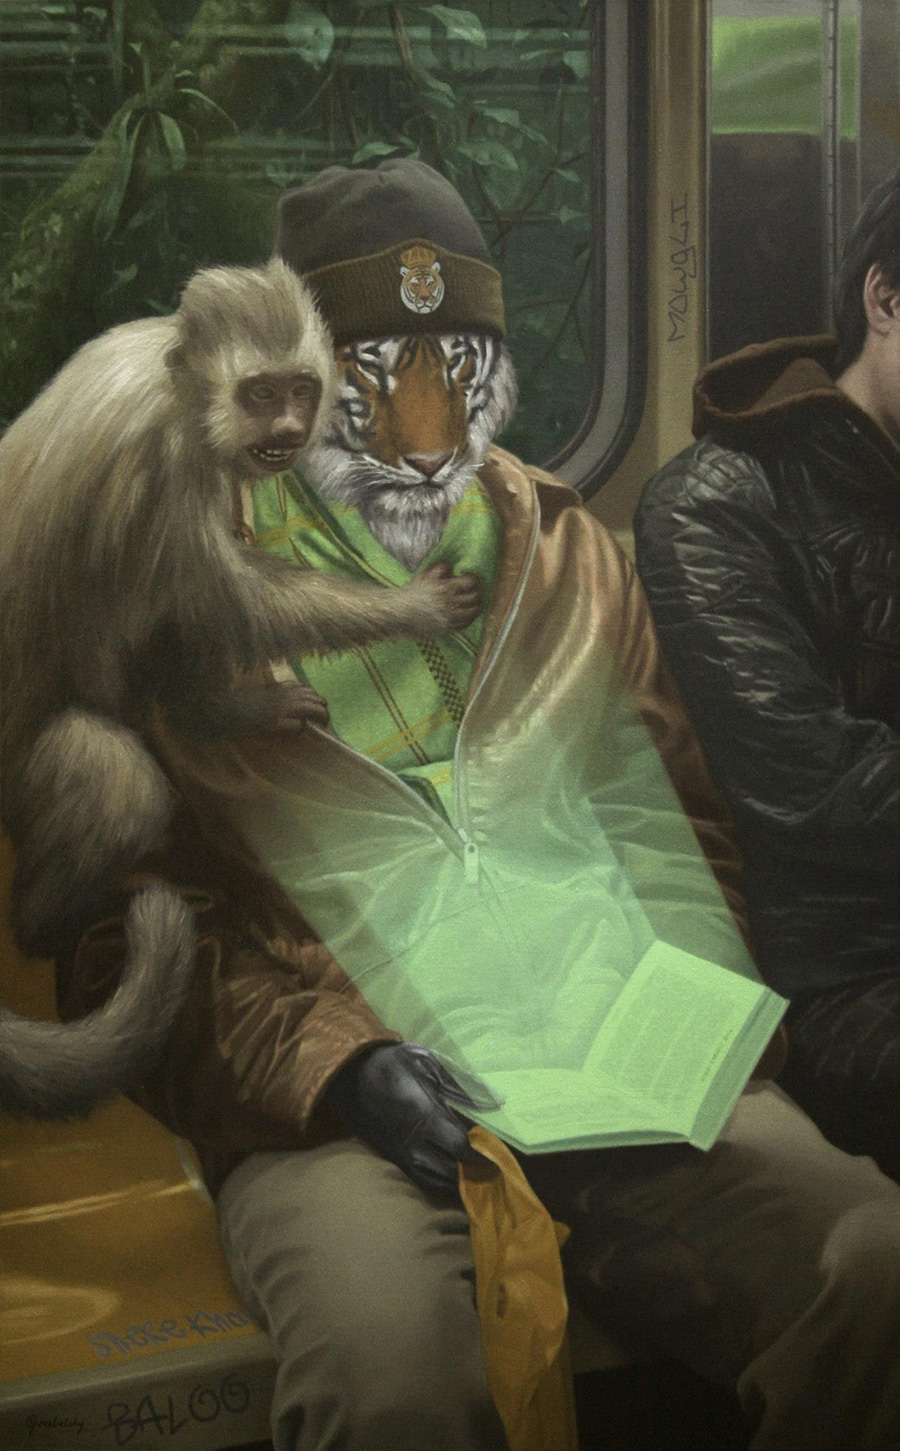 Shere Kahn & The Jungle Book - Anomaly - Oil Painting by Matthew Grabelsky